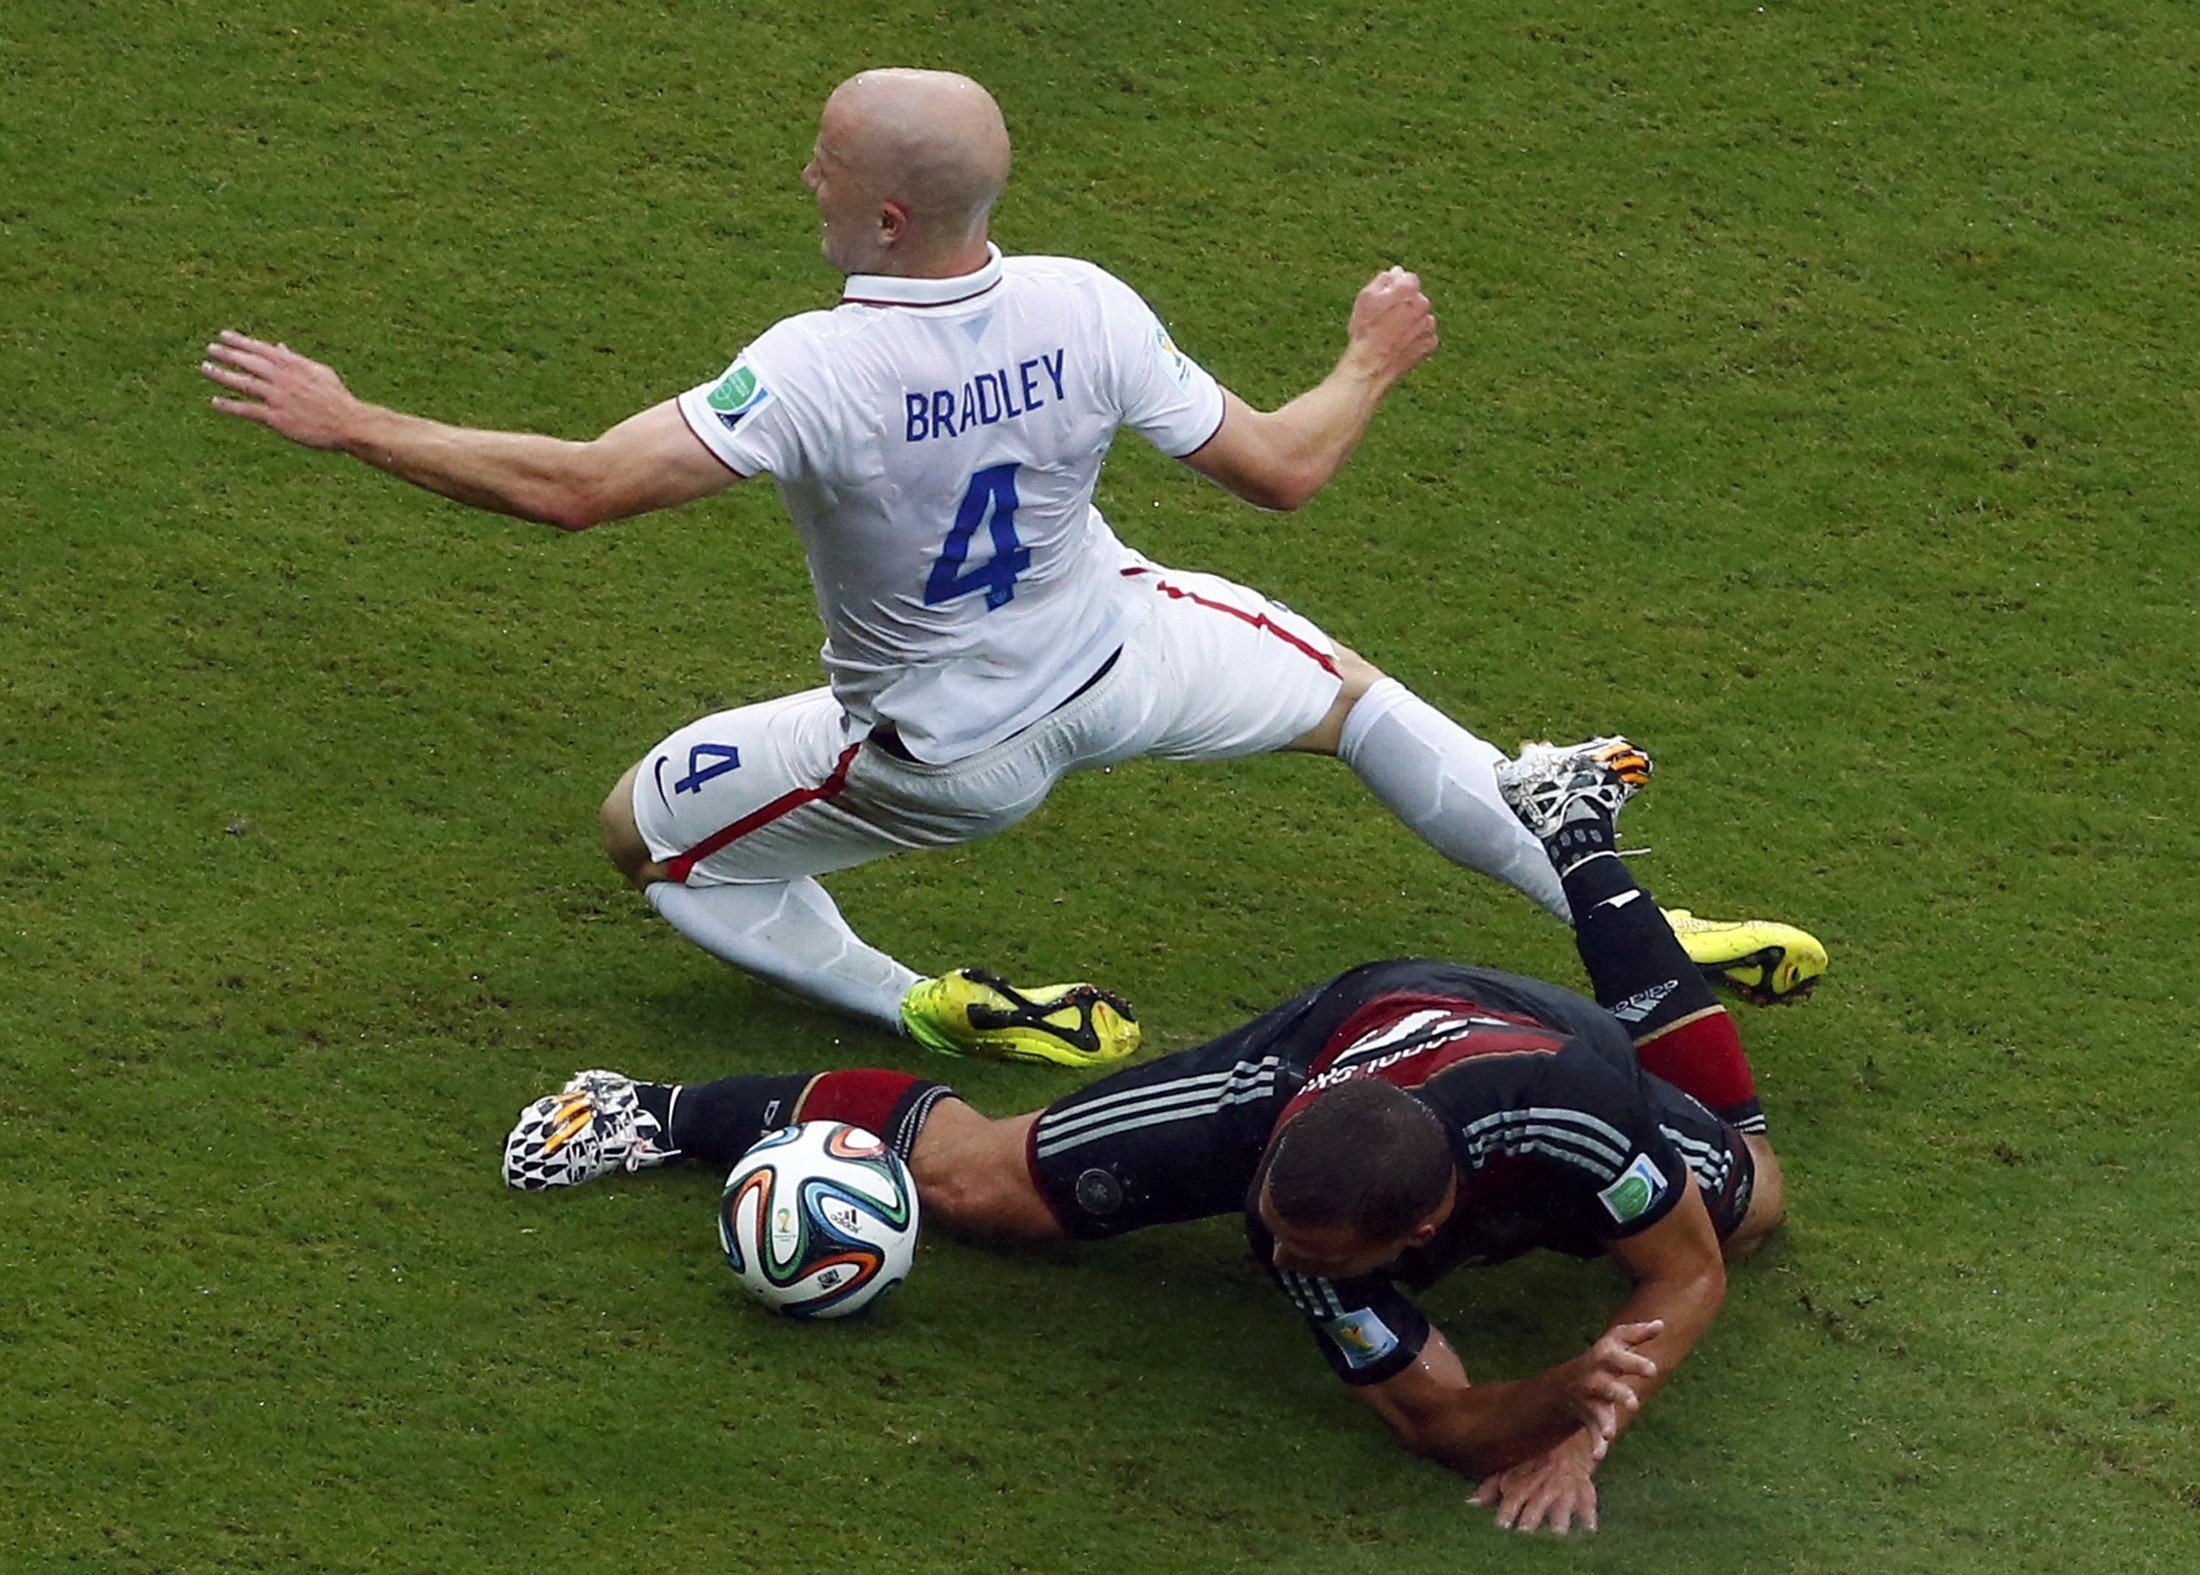 Michael Bradley of the U.S. falls over Germany's Lukas Podolski during their 2014 World Cup Group G soccer match at the Pernambuco arena in Recife, Brazil on June 26, 2014.